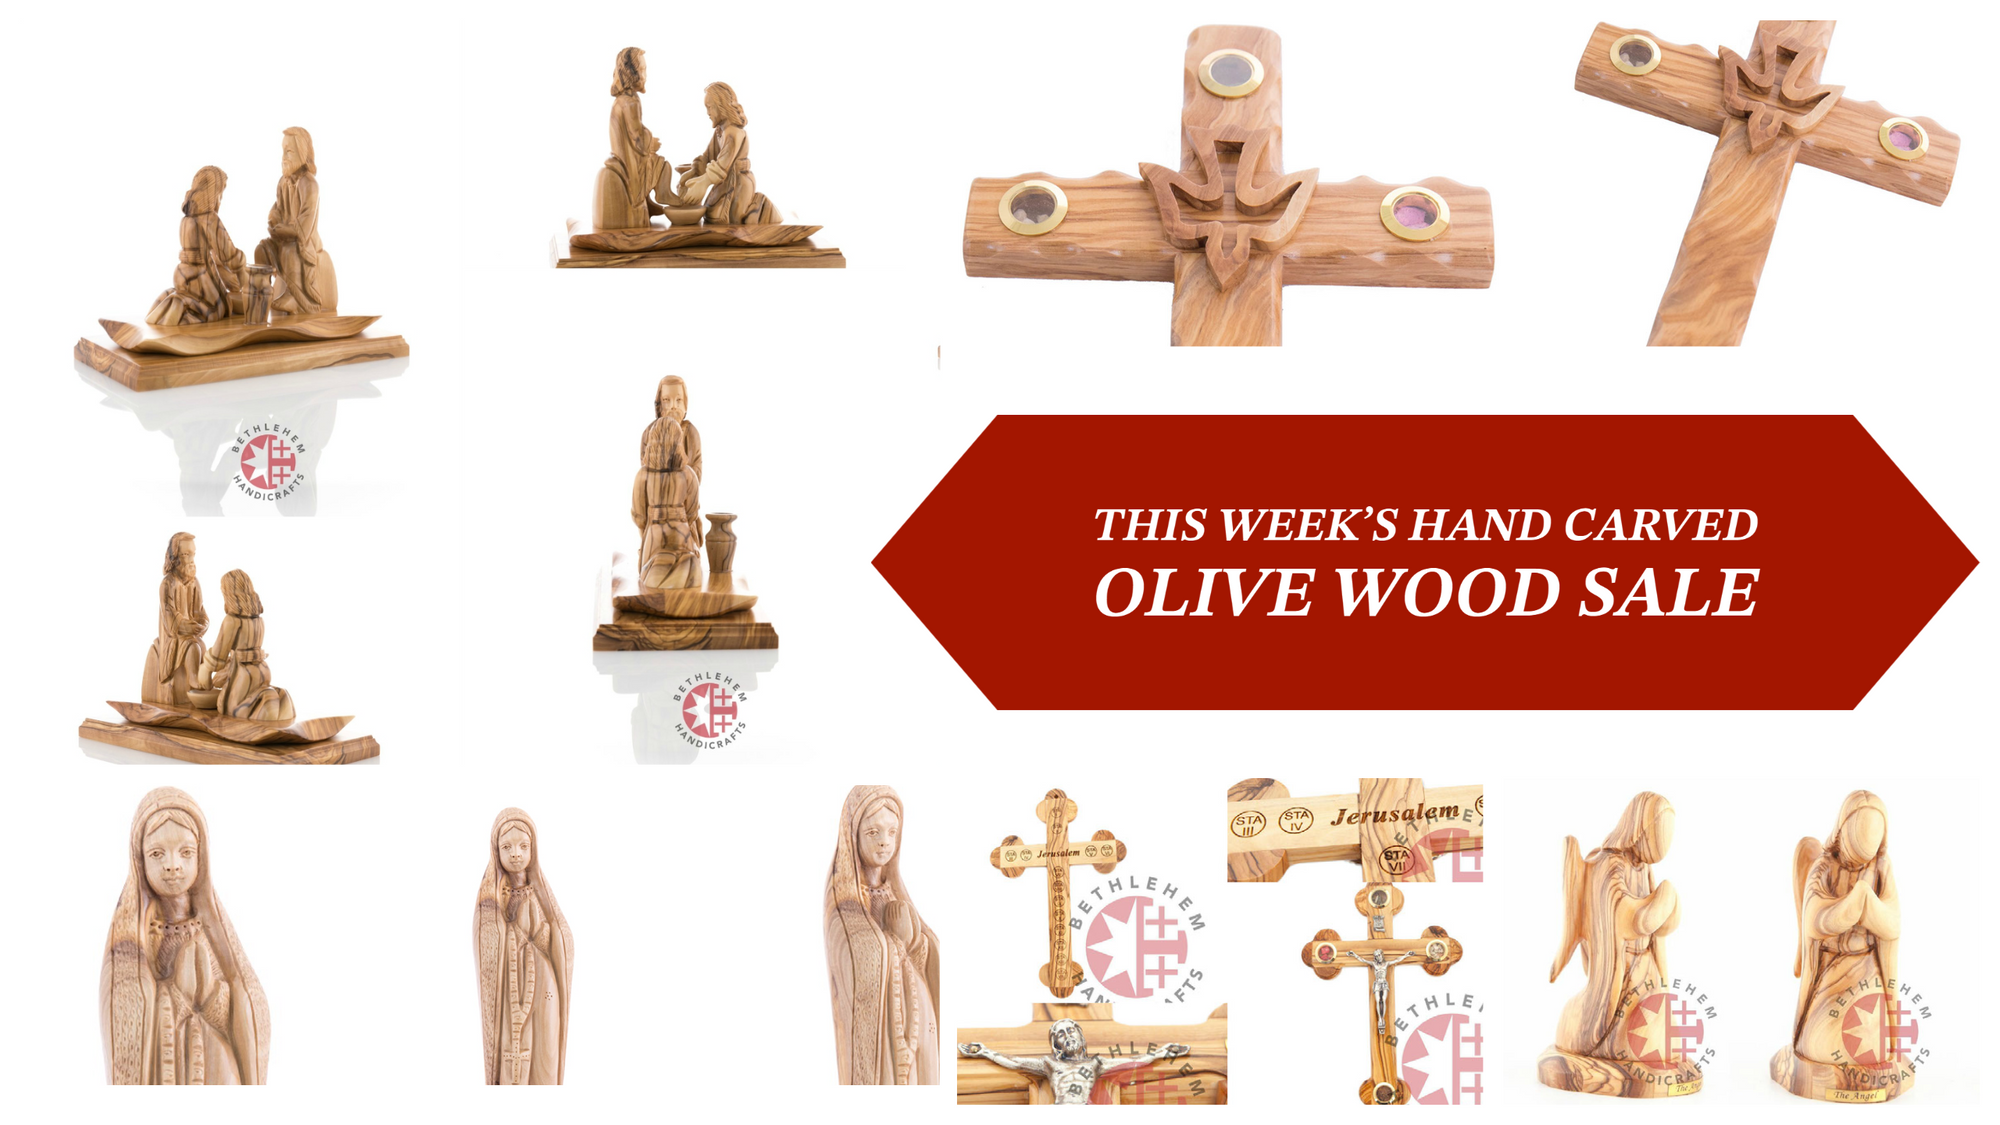 This Week's Hand Carved Olive Wood SALE | Bethlehem Handicrafts